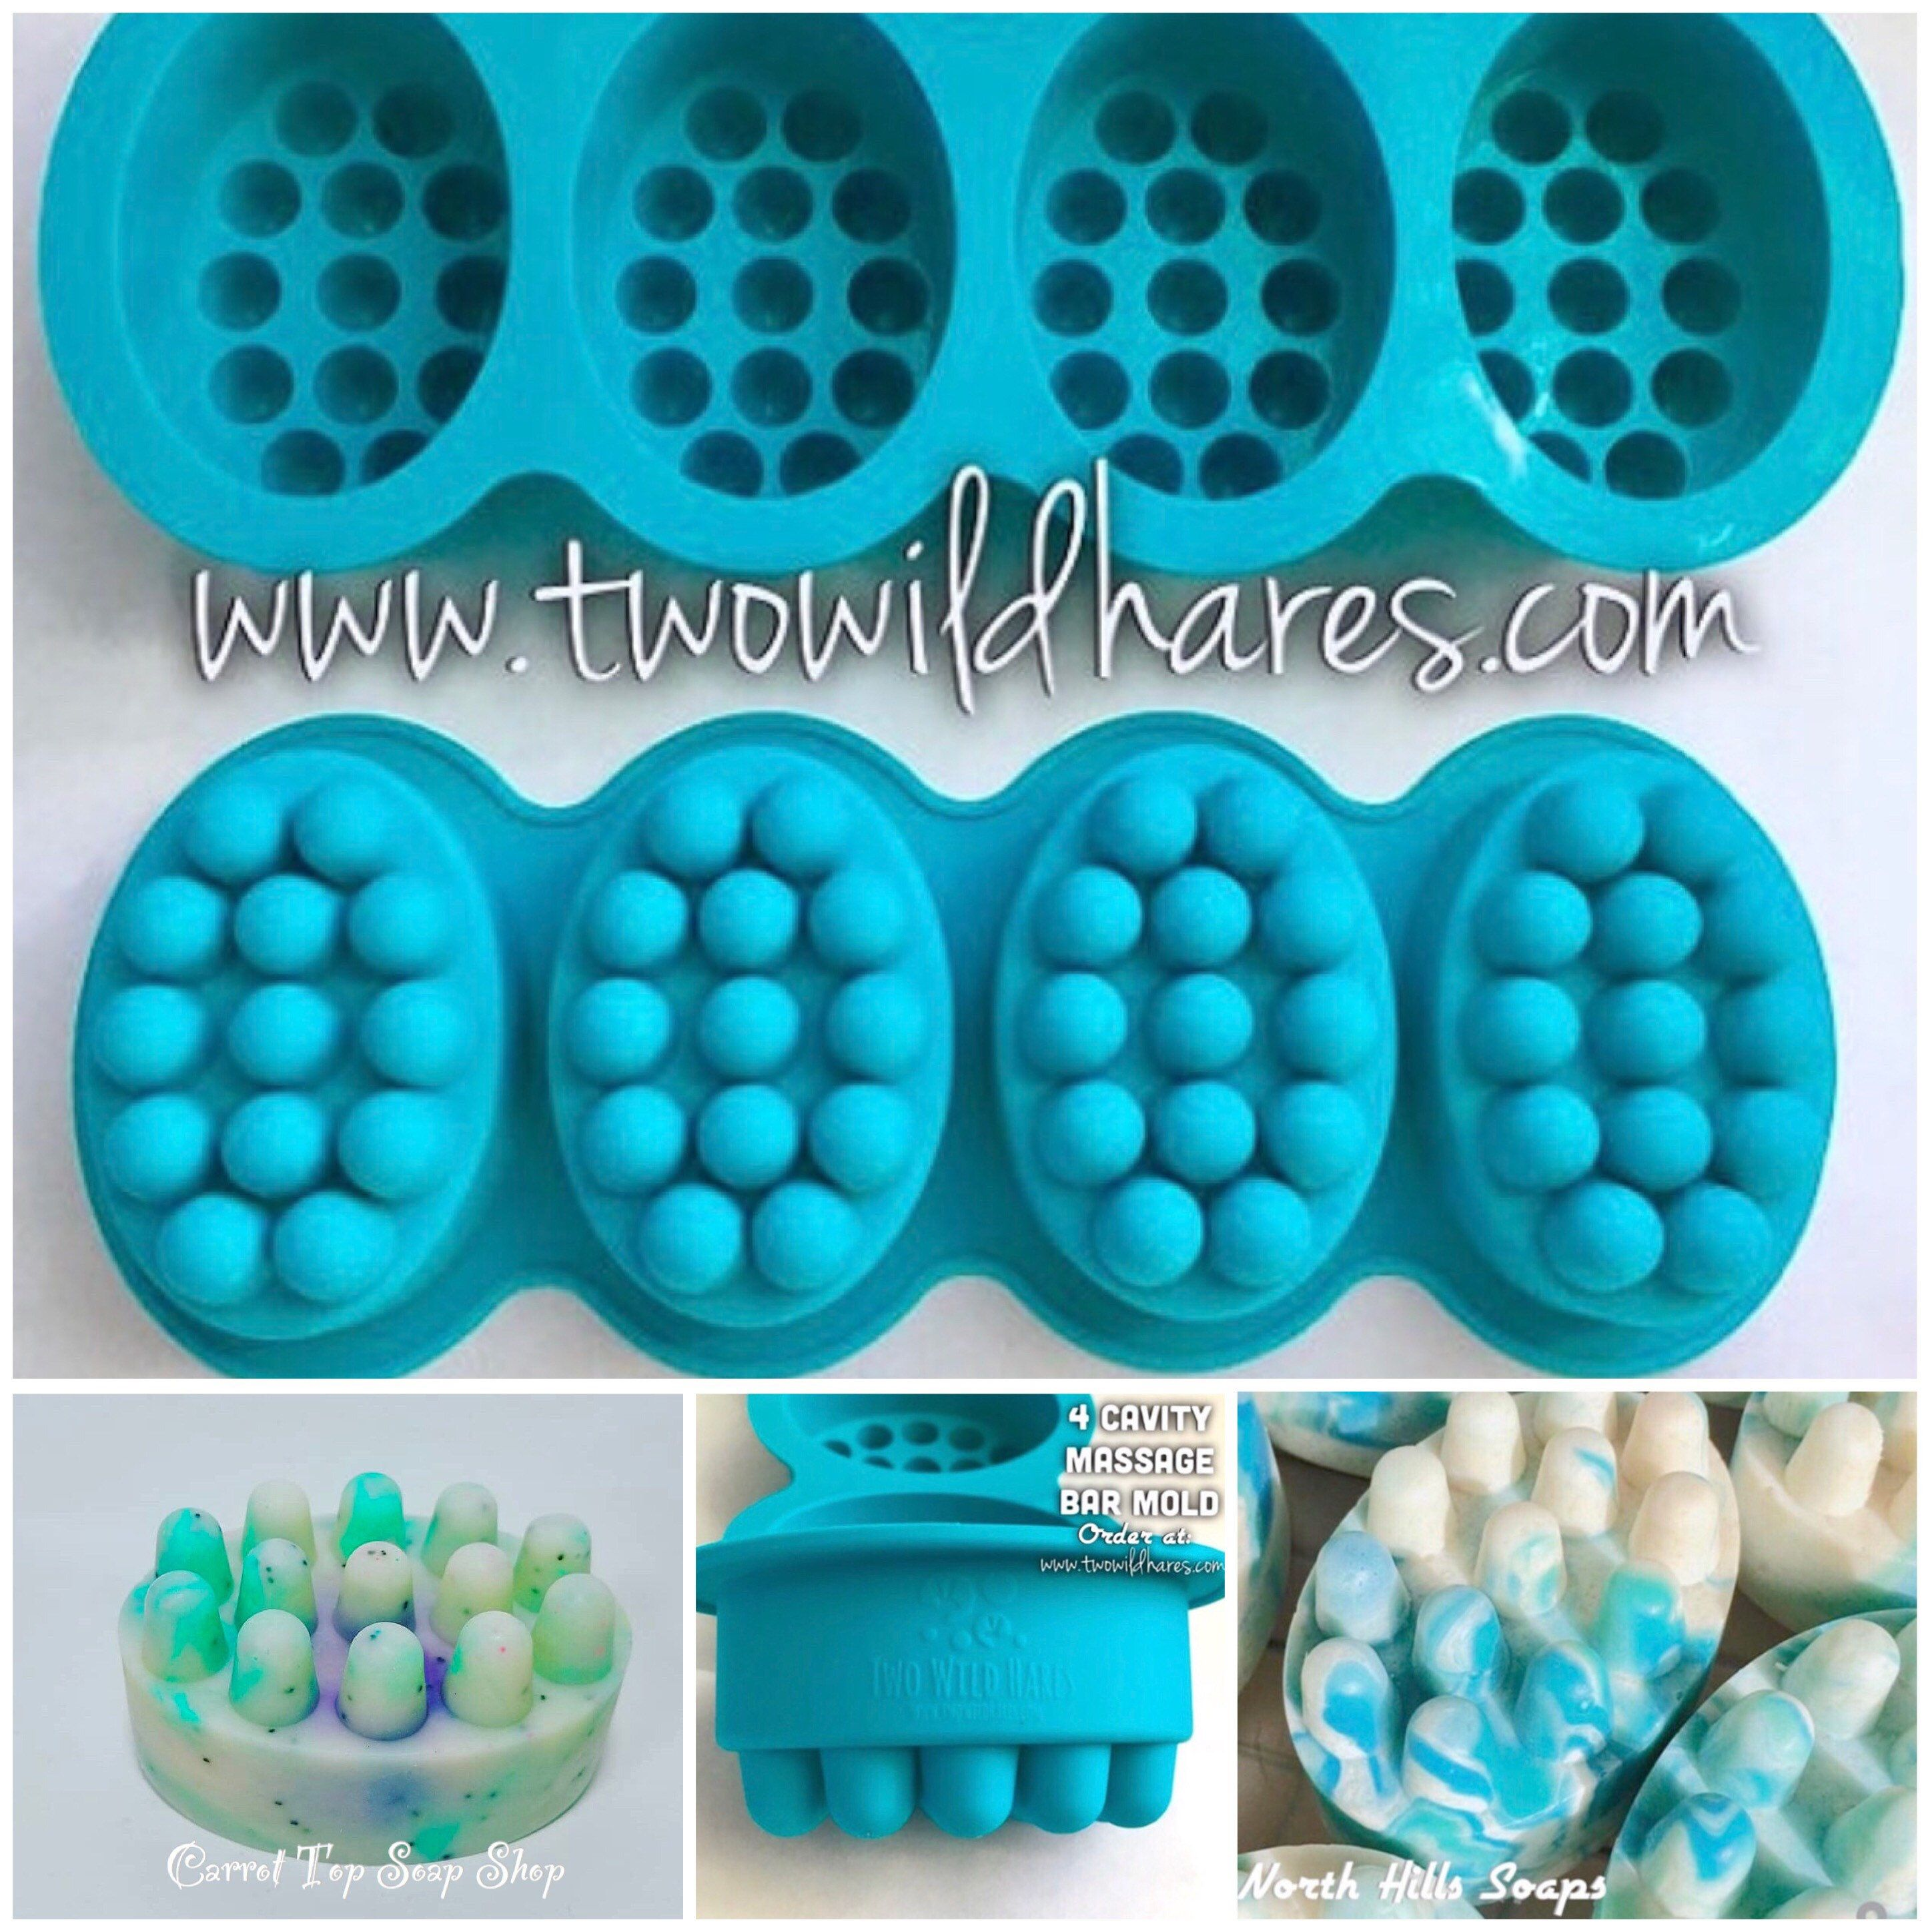 Massage Bar Silicone Soap Mold 4 4 5 Oz Cavities Professional Grade Mold Free Us Ship Two Wild Hares Massage Bars Soap Molds Silicone Soap